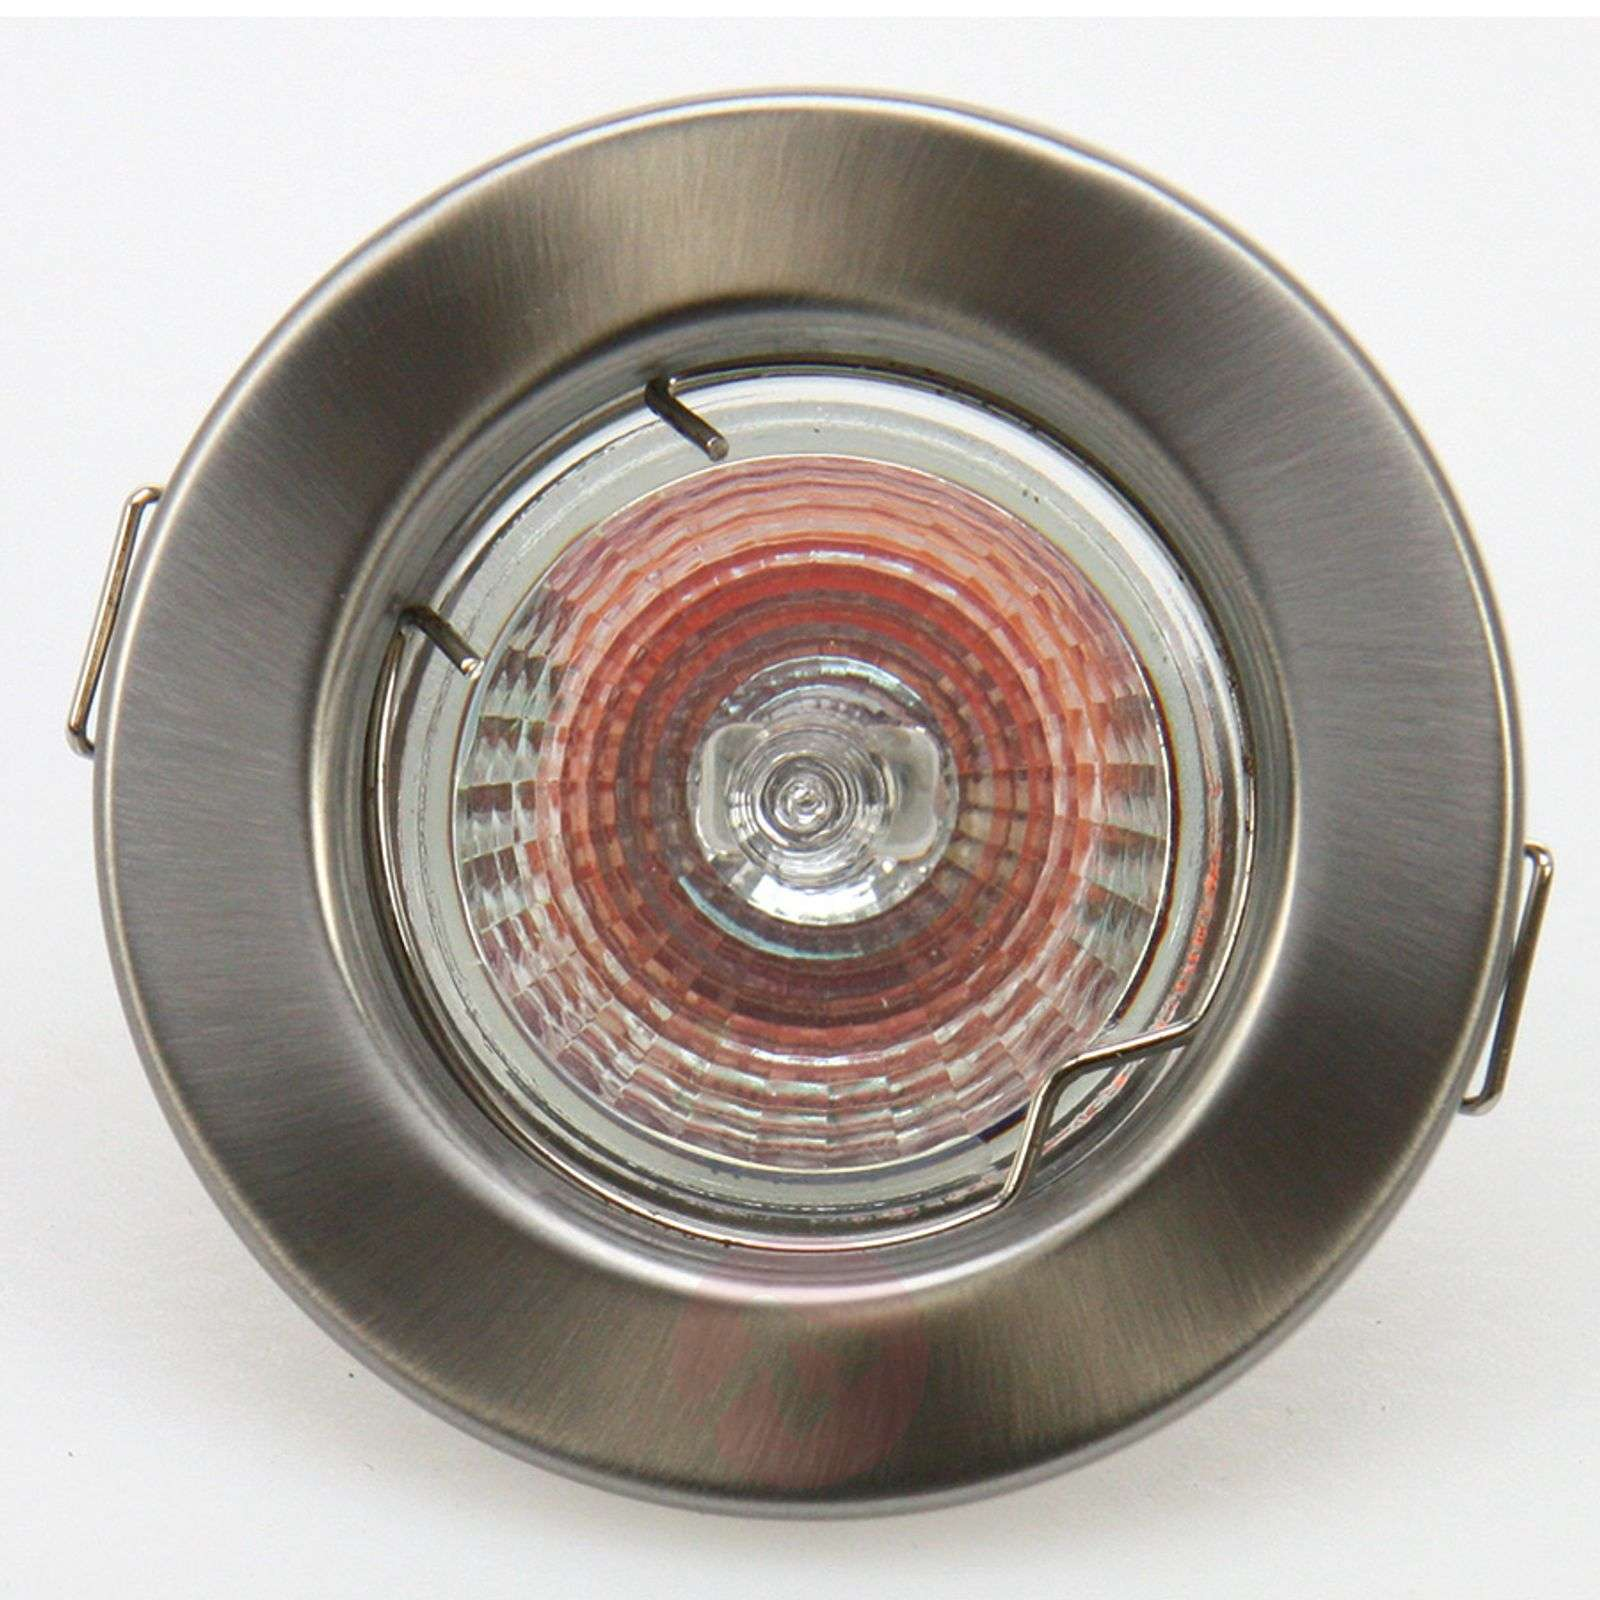 Low voltage recessed light stainless steel mr16 lights low voltage recessed light stainless steel mr16 9504107 01 aloadofball